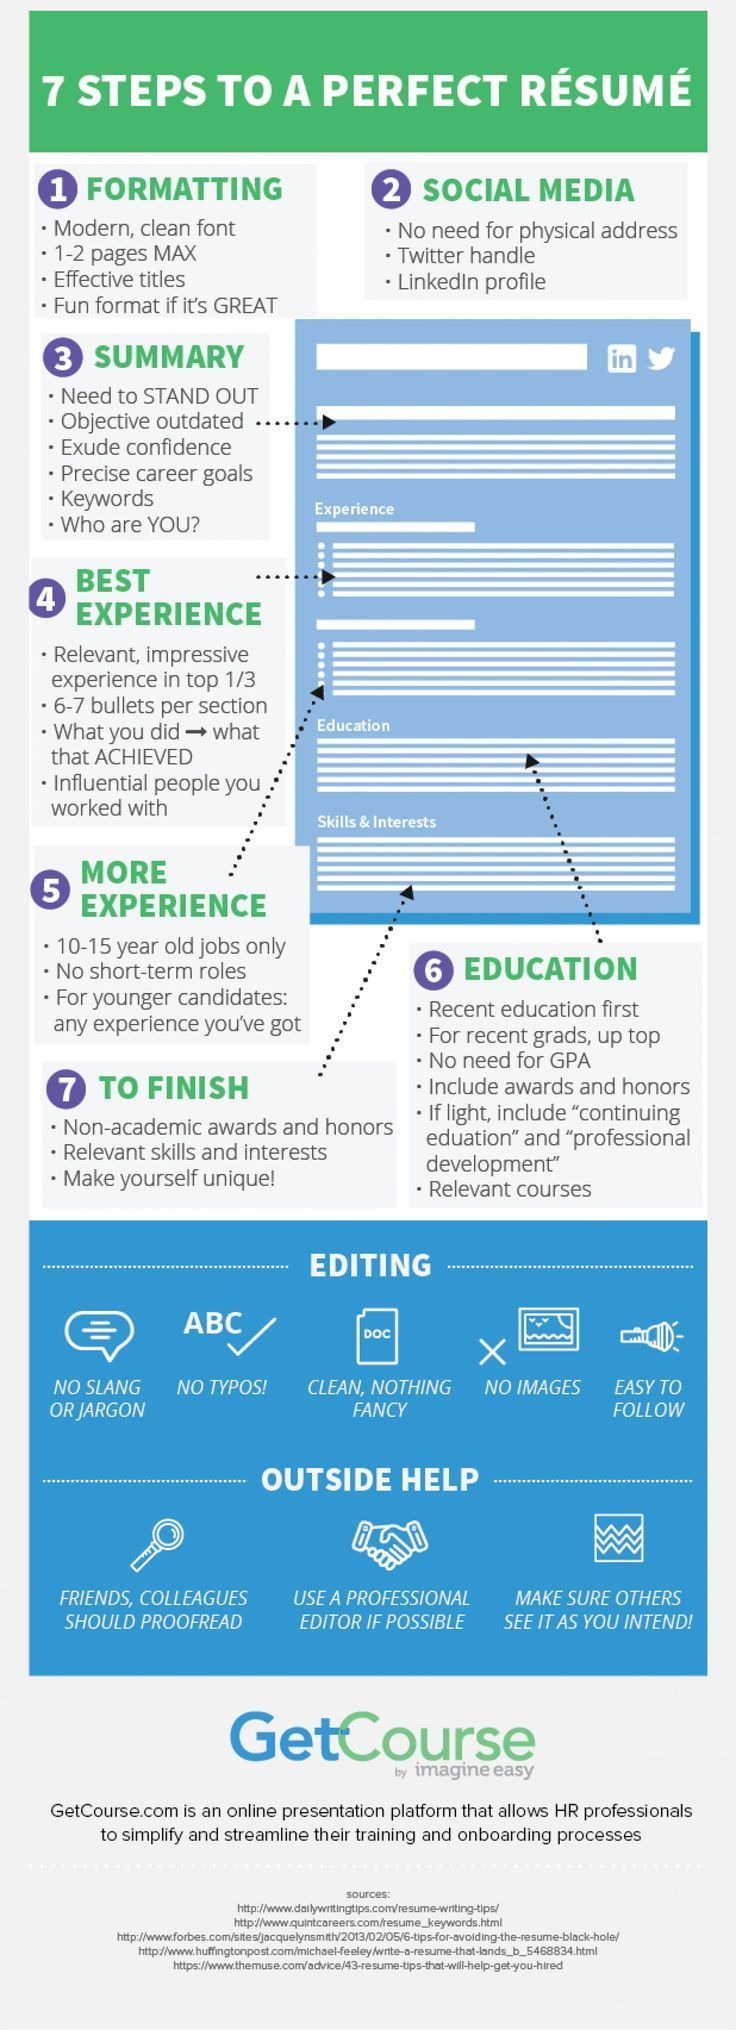 How to find a job easy and fast read more on tipsographic